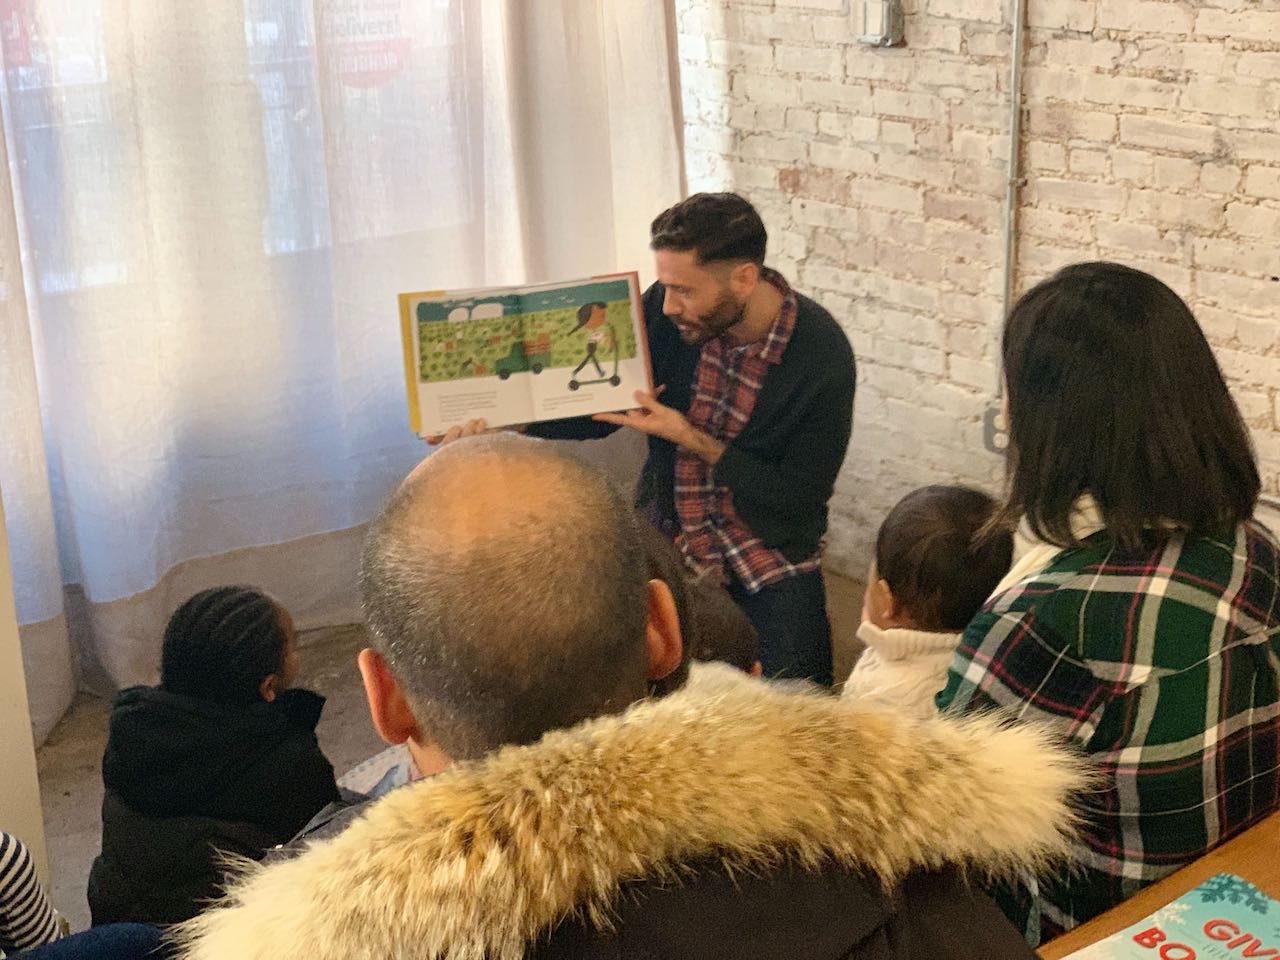 Virtual bookstore brings local families together